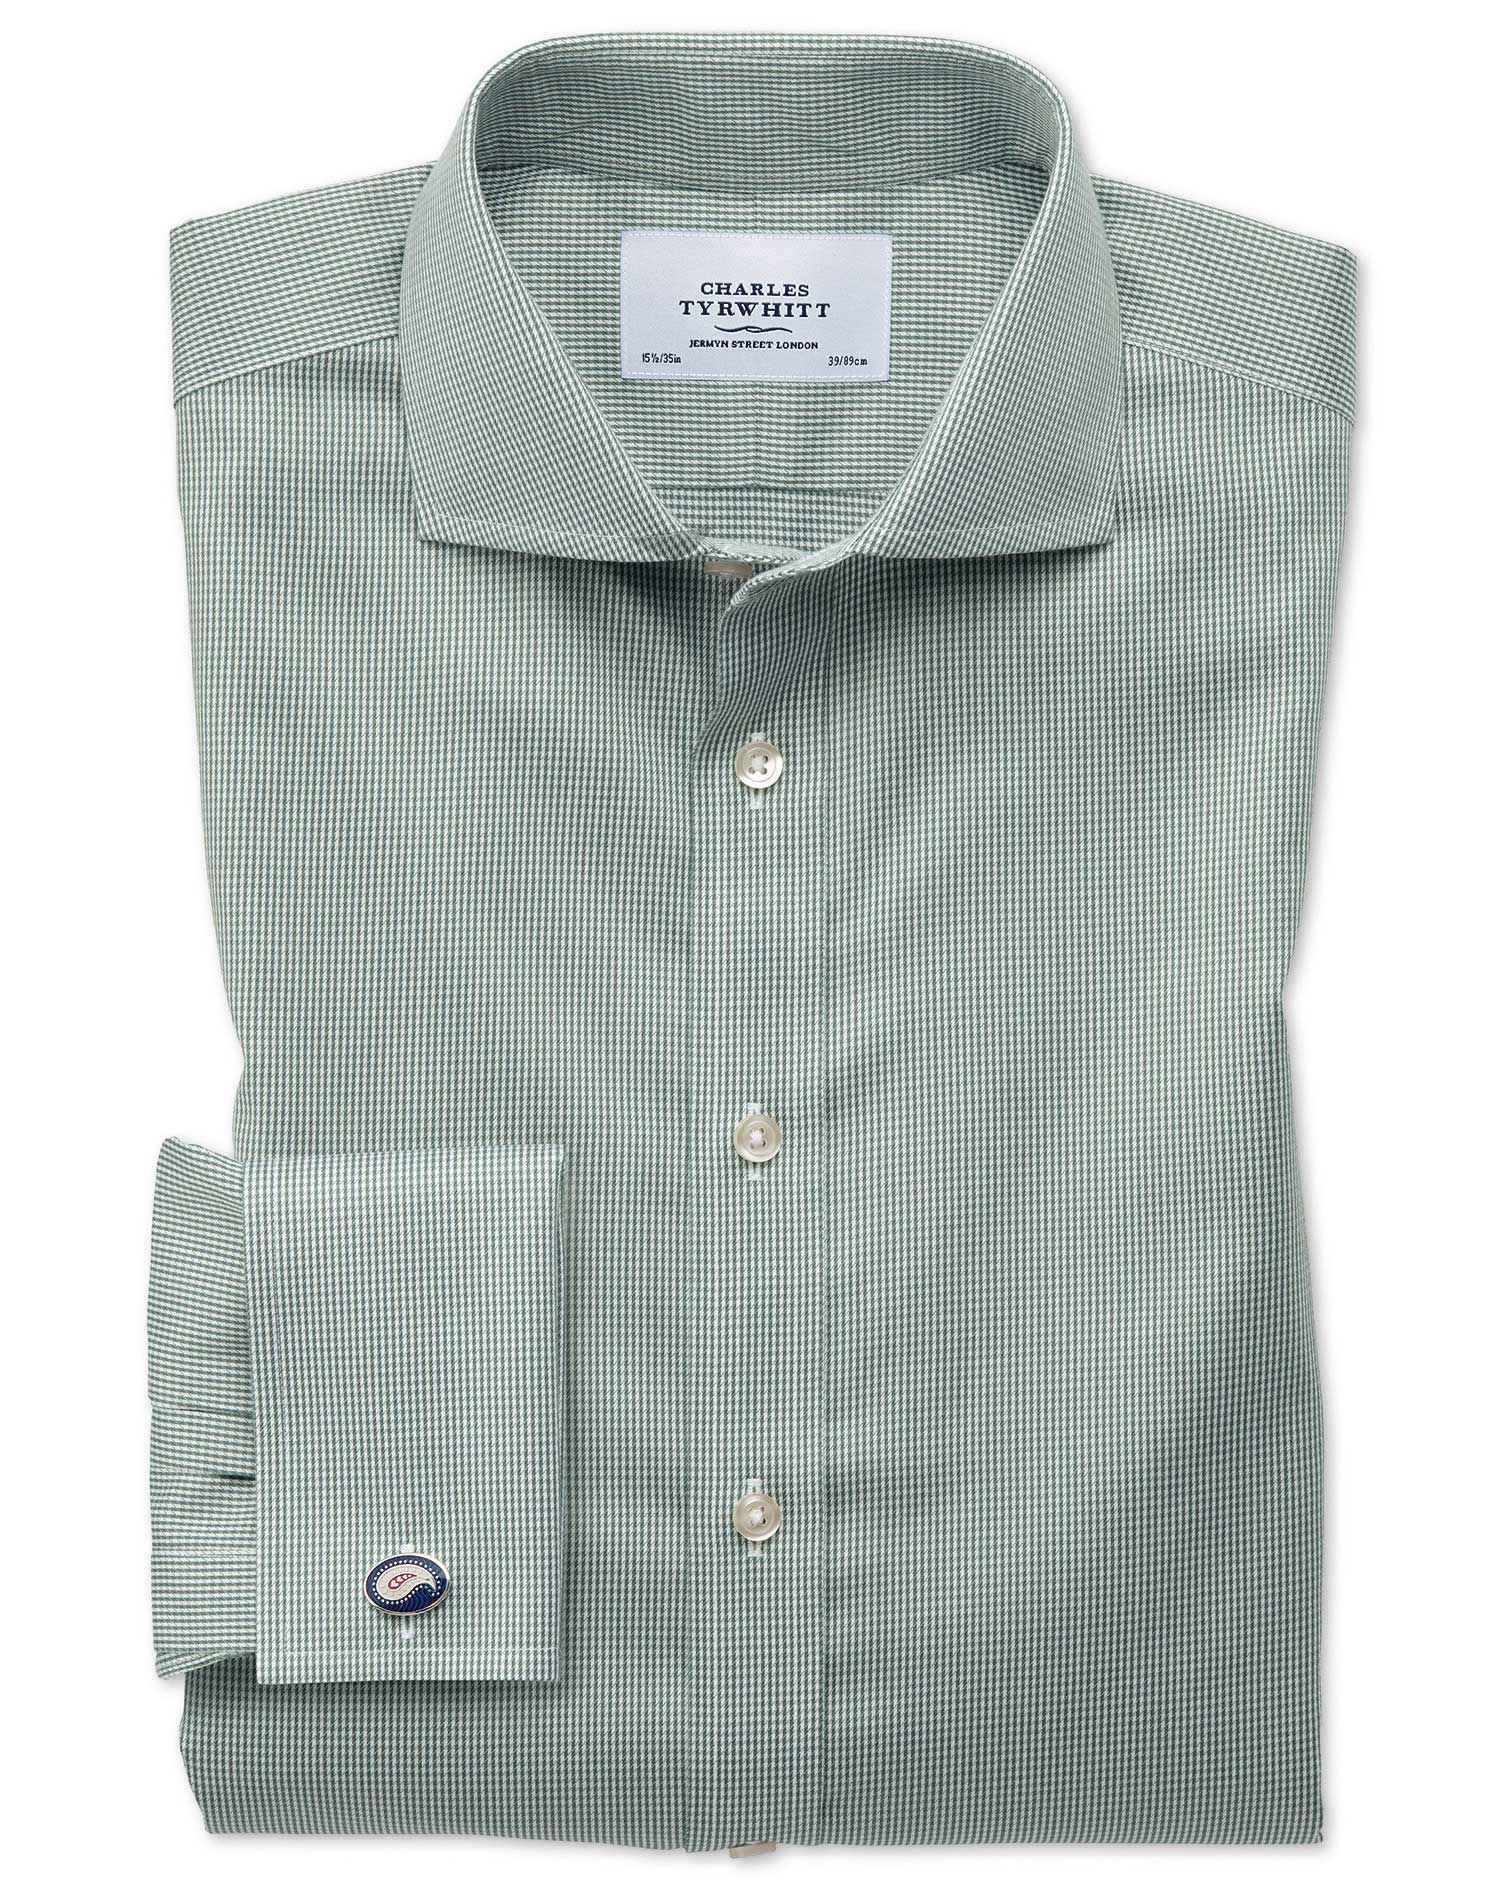 Extra Slim Fit Cutaway Non-Iron Puppytooth Olive Cotton Formal Shirt Double Cuff Size 15/34 by Charl